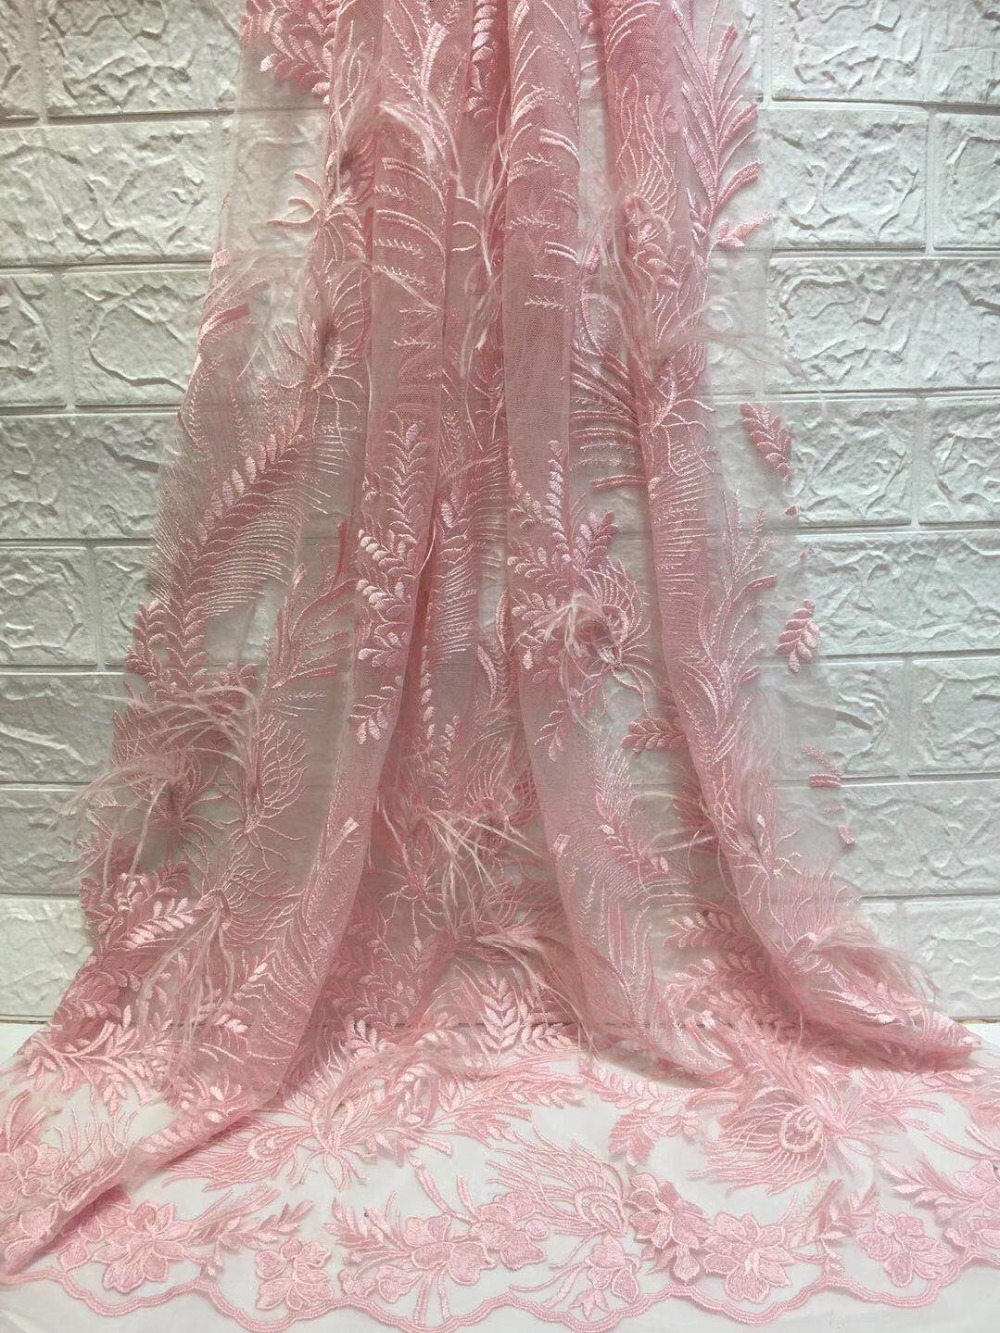 2019 French Lace Fabric Wedding High Class African Tulle Lace Fabric 5 Yard with feather Embroidered Tulle Lace Fabric2019 French Lace Fabric Wedding High Class African Tulle Lace Fabric 5 Yard with feather Embroidered Tulle Lace Fabric